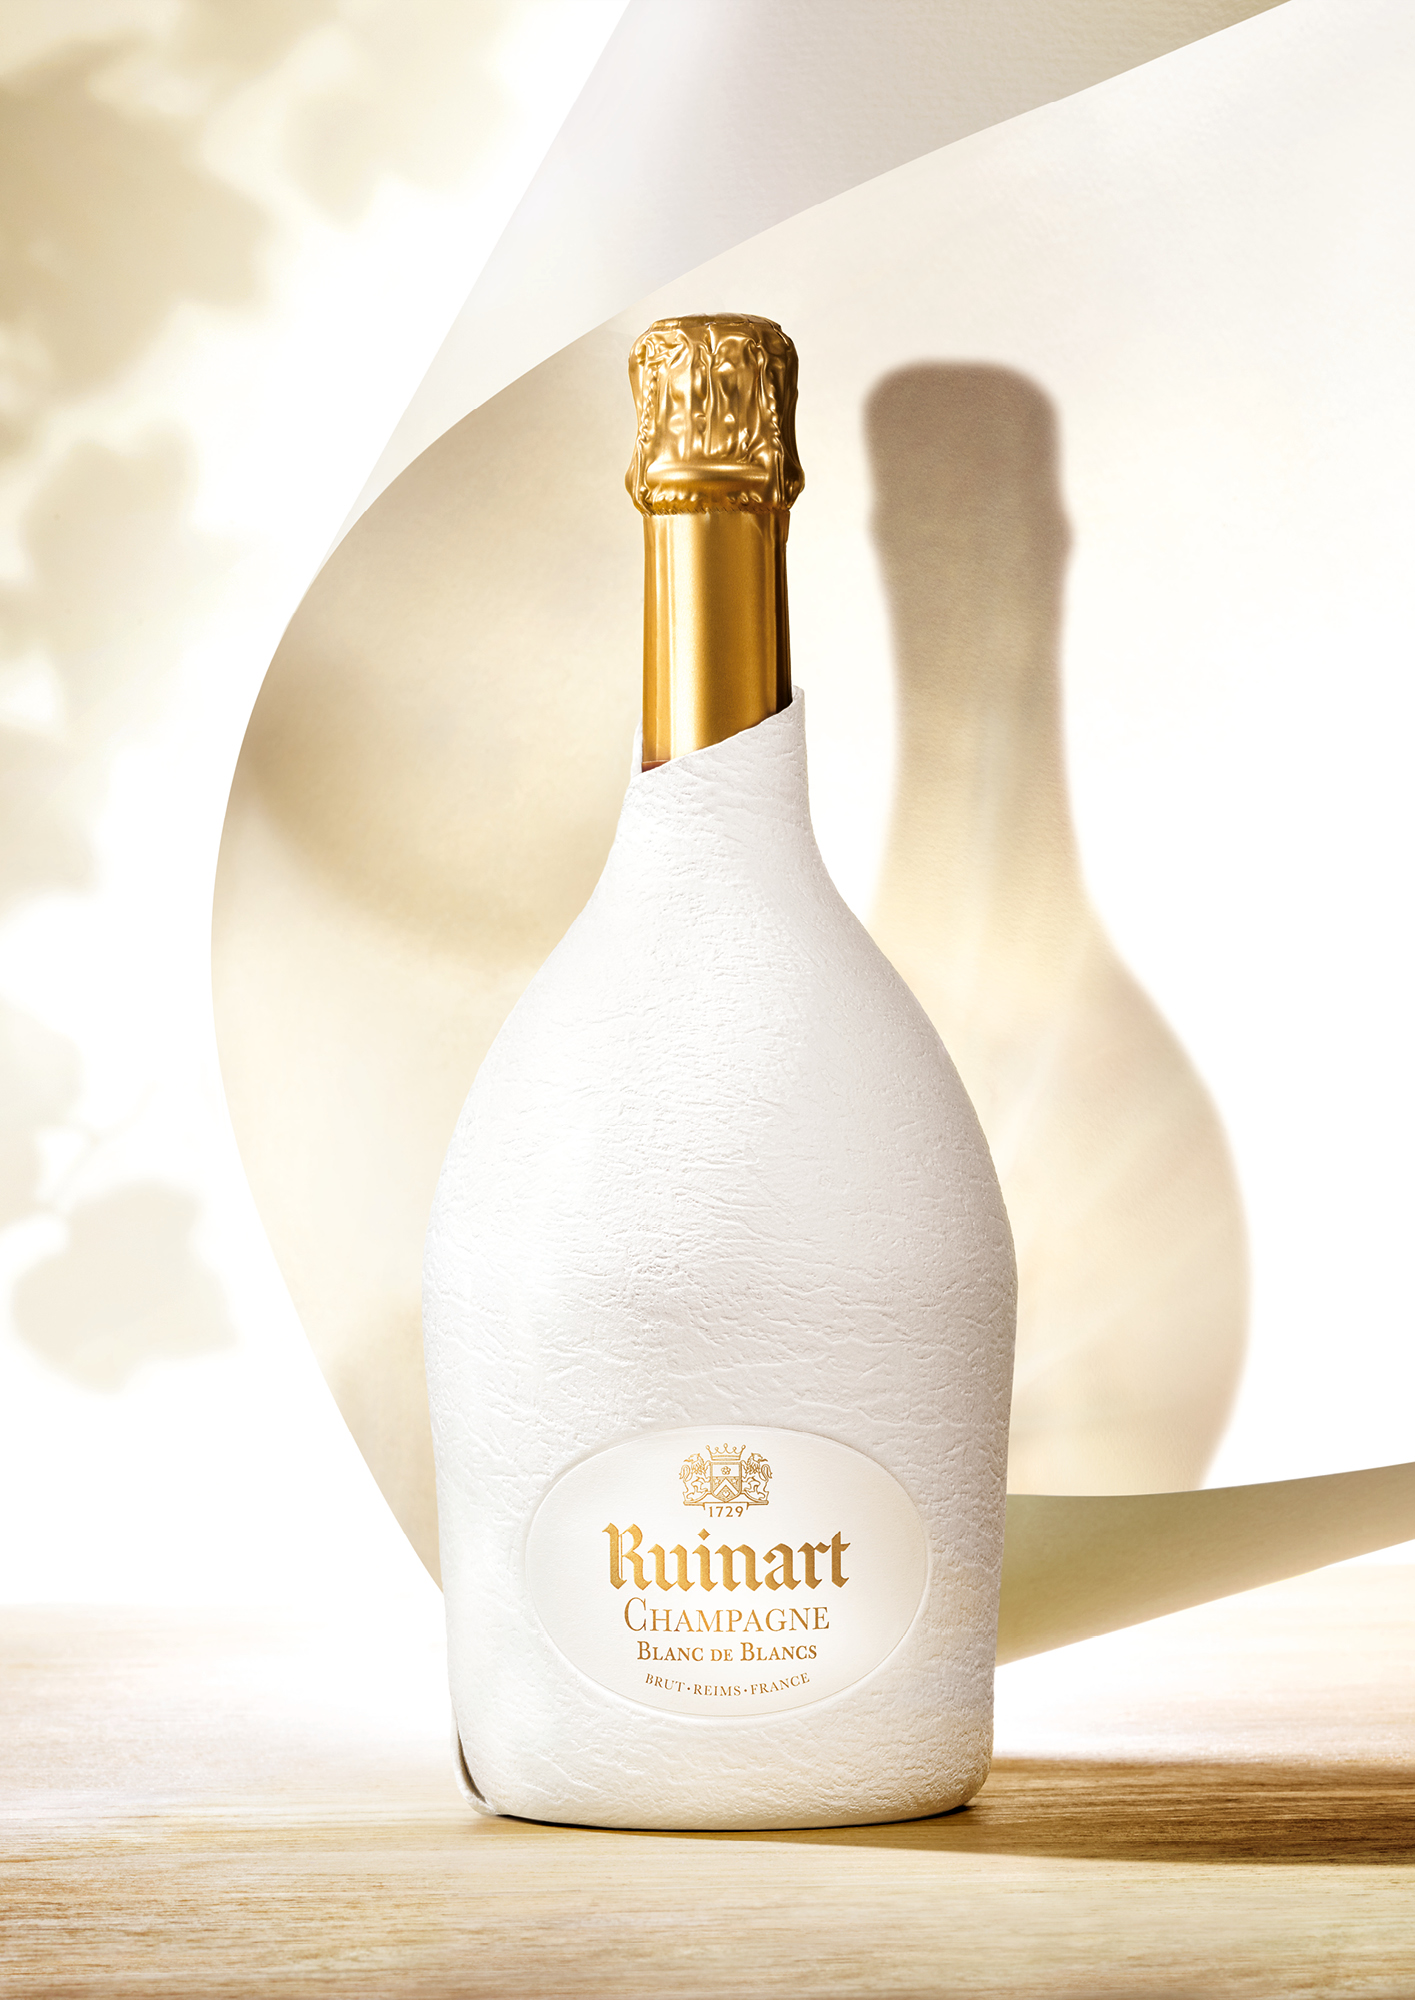 Ruinart's second skin has been carefully designed to prevent light ingress